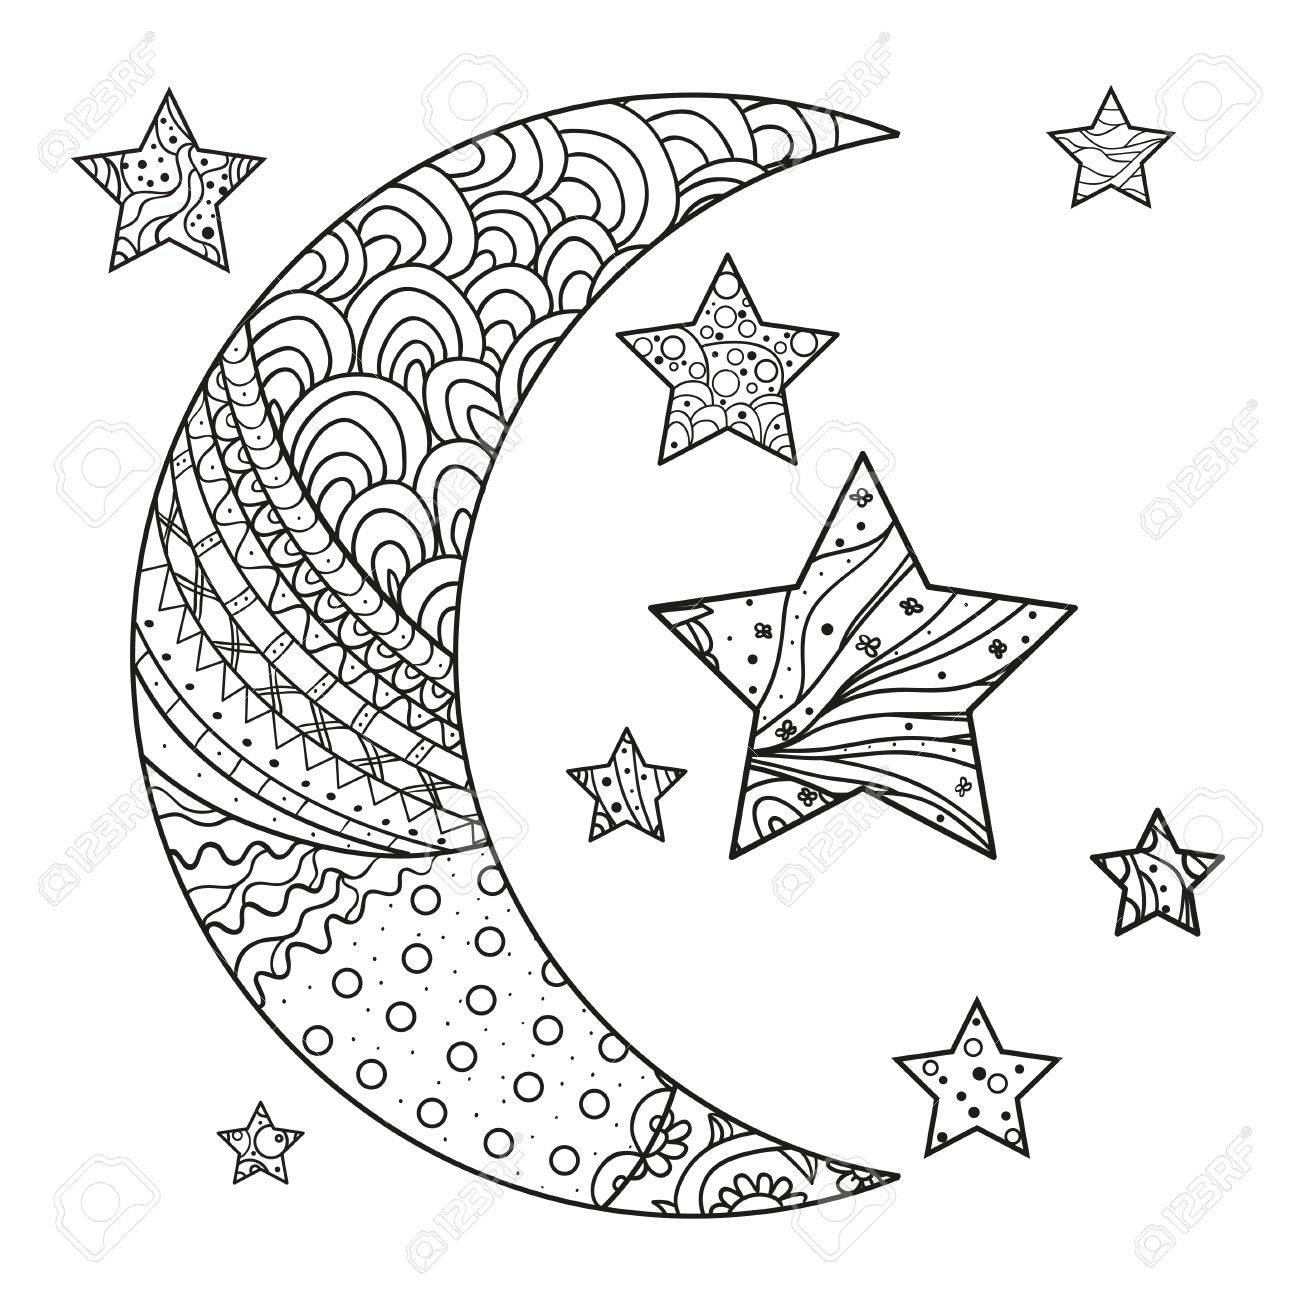 Illustration For Anti Stress Coloring Page Moon And Star With Abstract Patterns On Isolation Background Design Spiritual Relaxation Adults